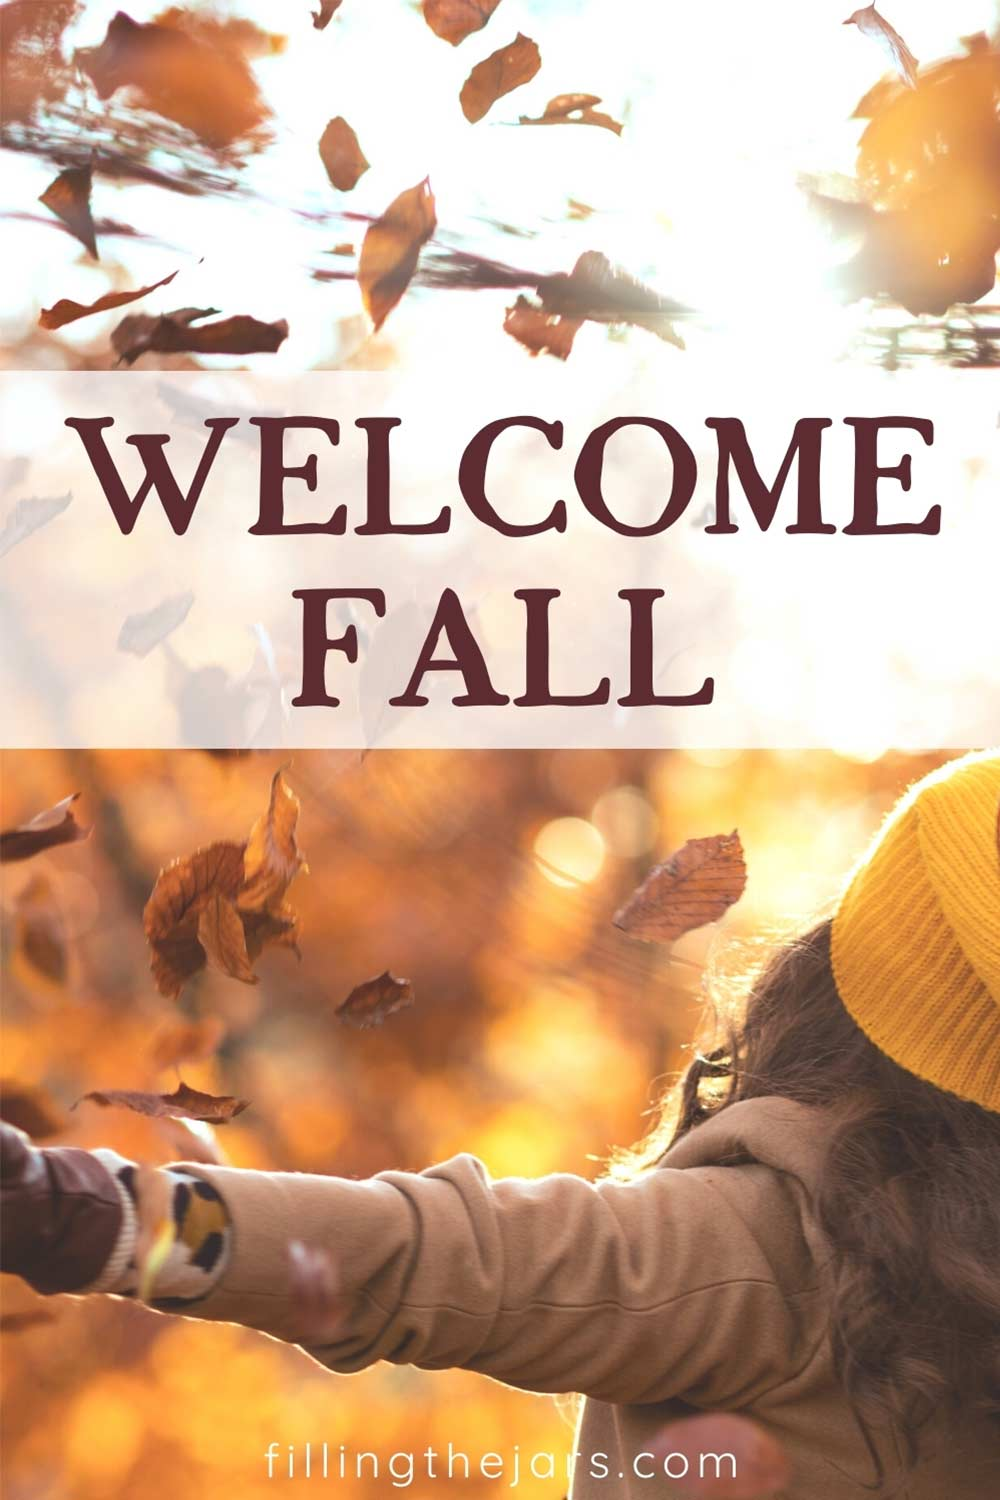 Text Welcome Fall on white stripe over image of woman in tan coat holding arms open to catch falling autumn leaves.